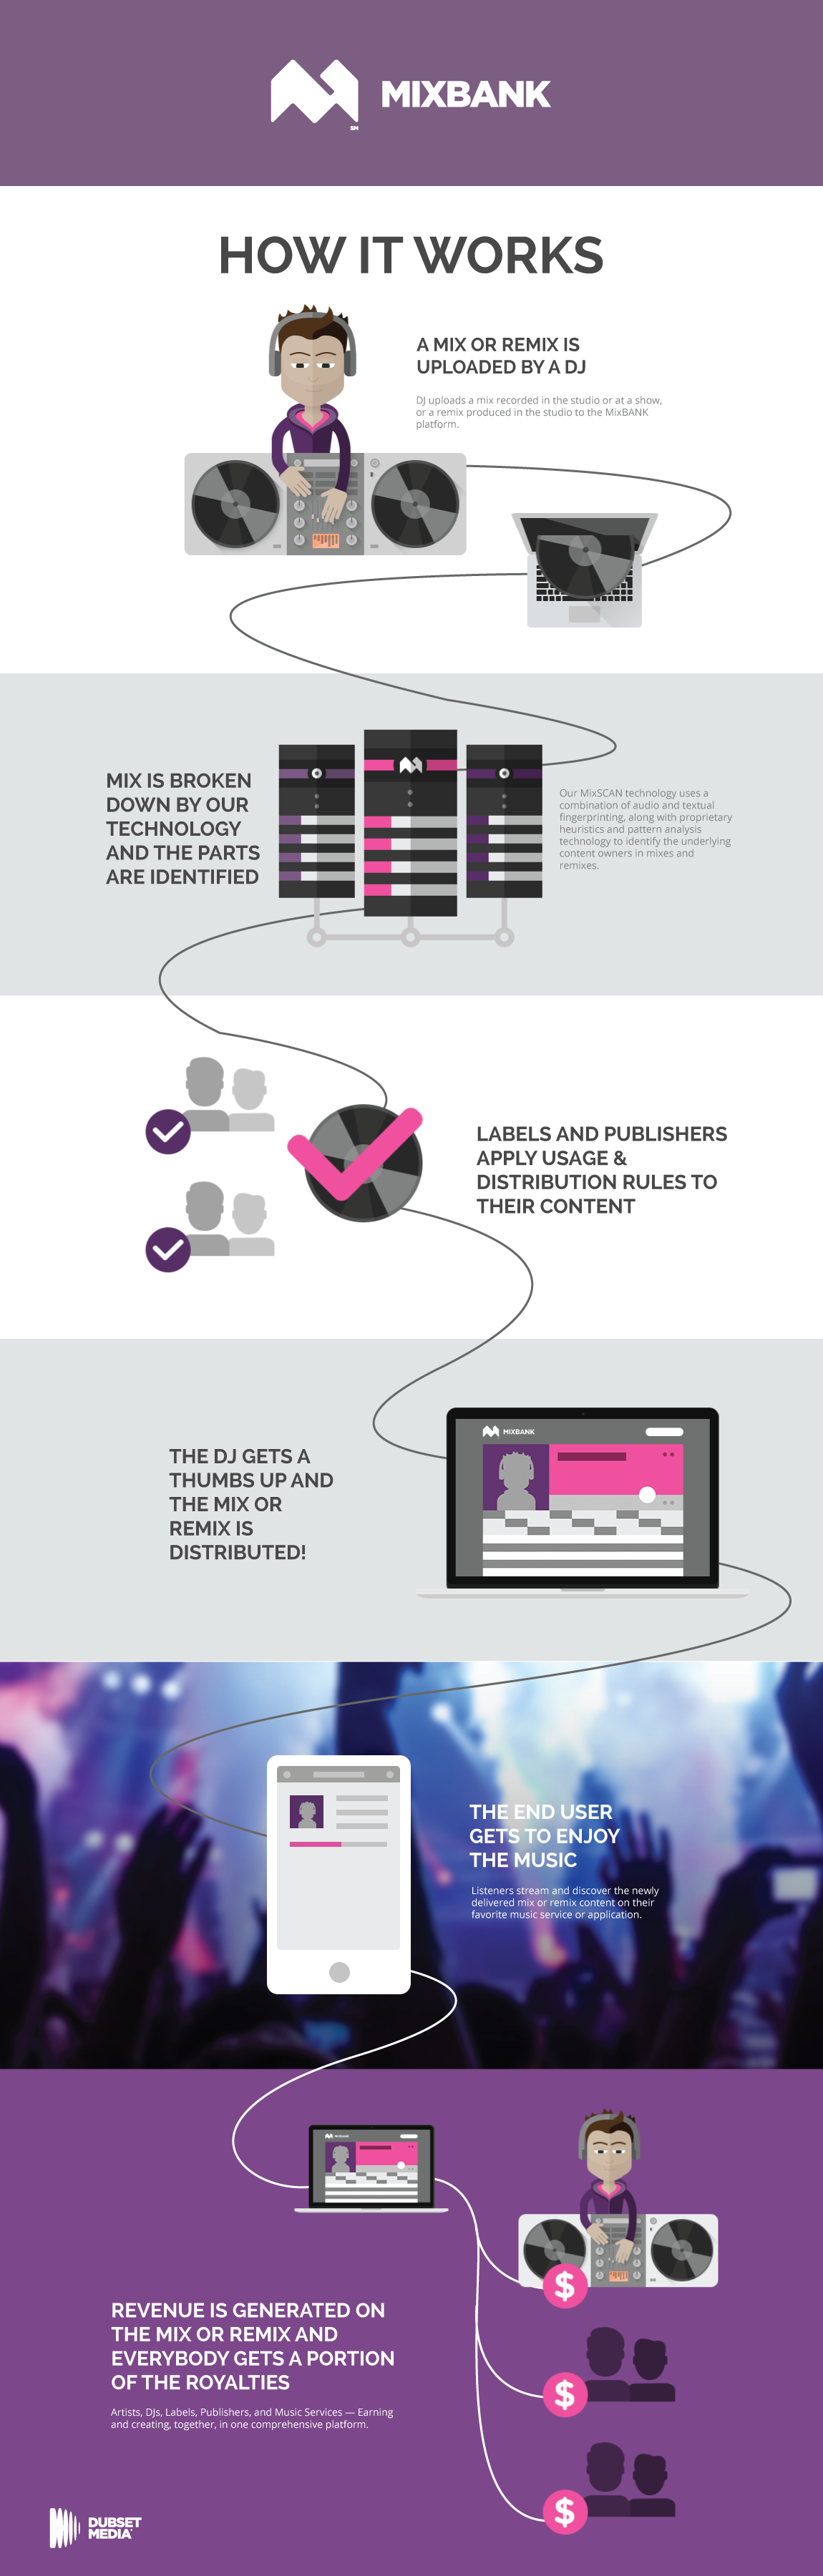 How-MixBANK-Works